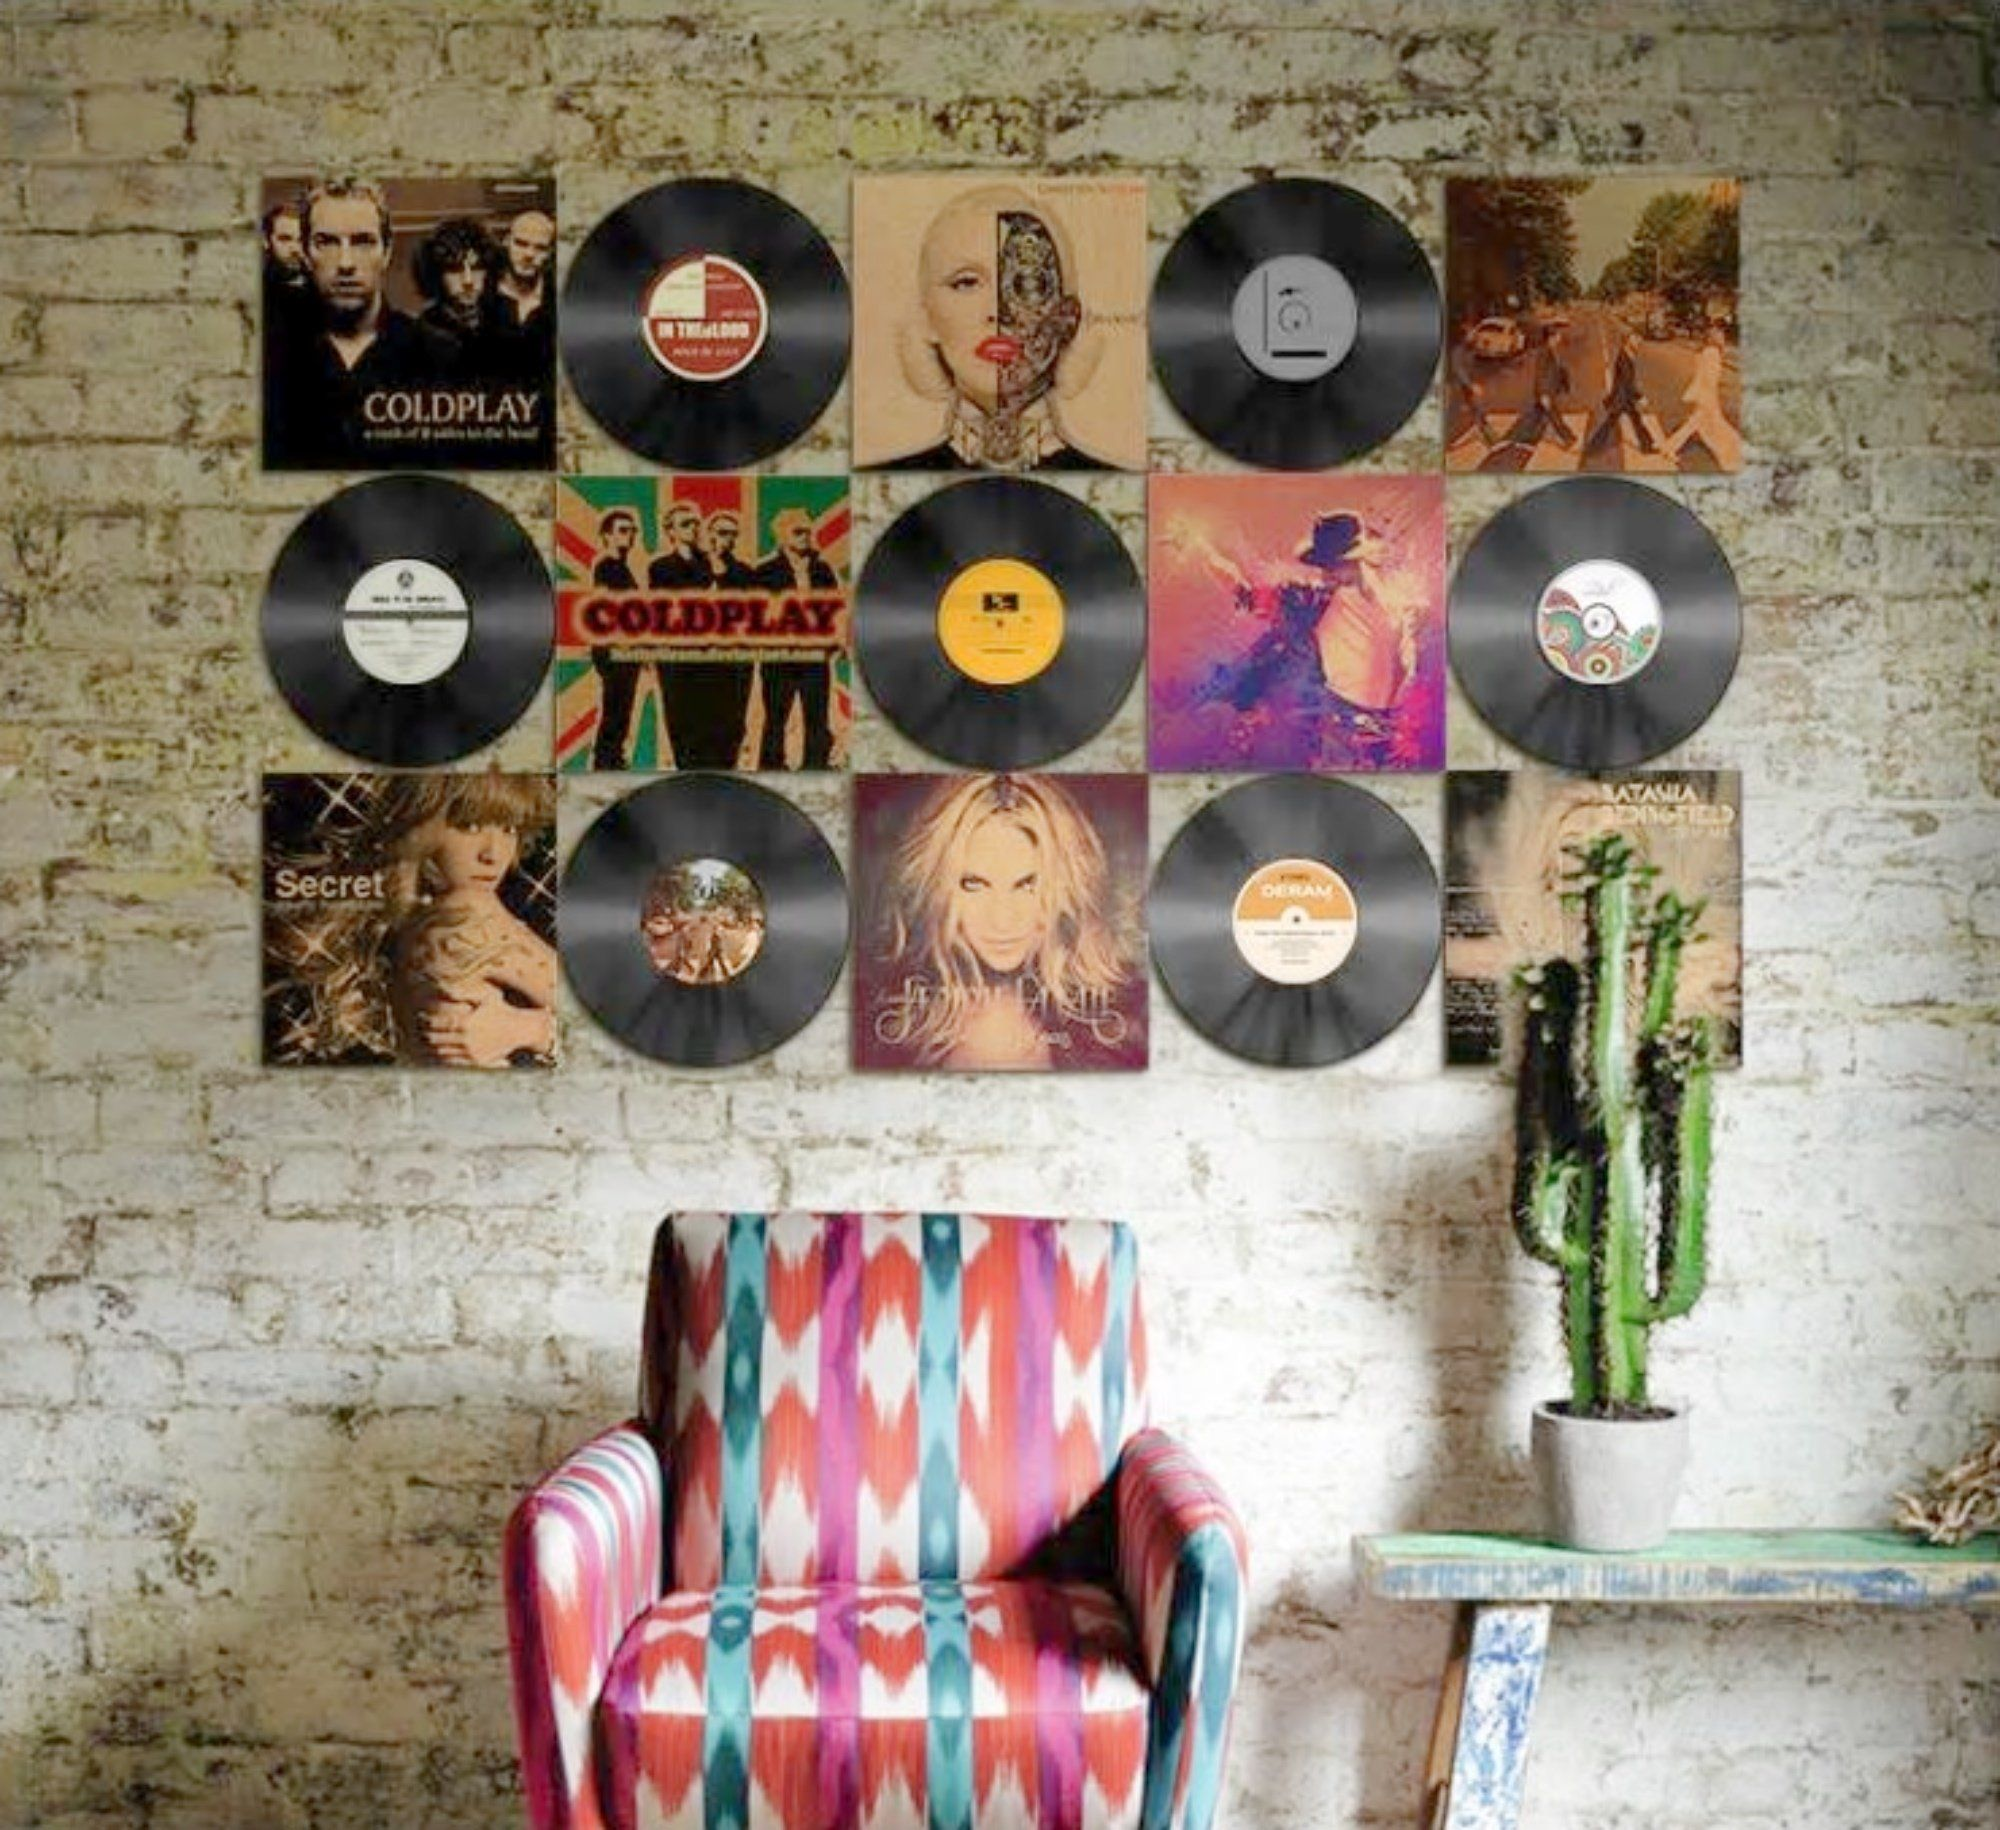 Vinyl Record And Album Cover Wall Display Vinyl Records Decor Record Wall Decor Vinyl Room